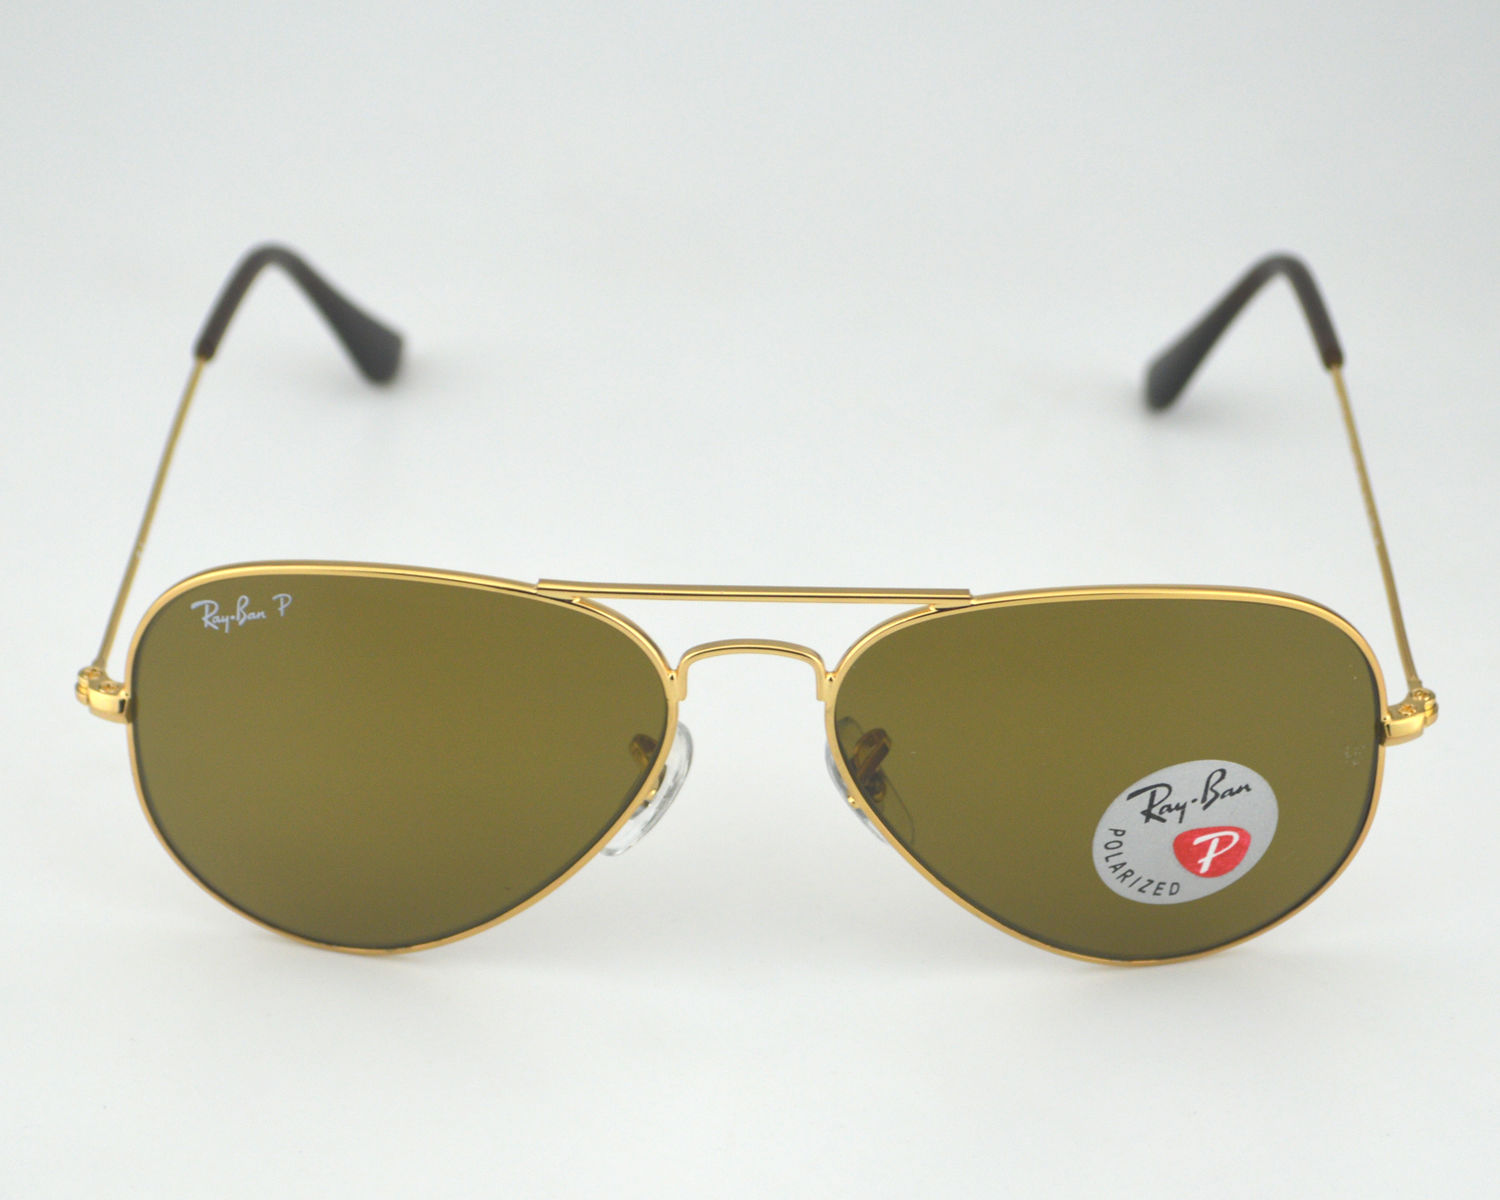 27e88b7508 Ray-Ban RB3025 Aviator Classic 001 57 Gold Frame Polarized Brown Classic  Glass Lens Unisex Sunglasses 55mm